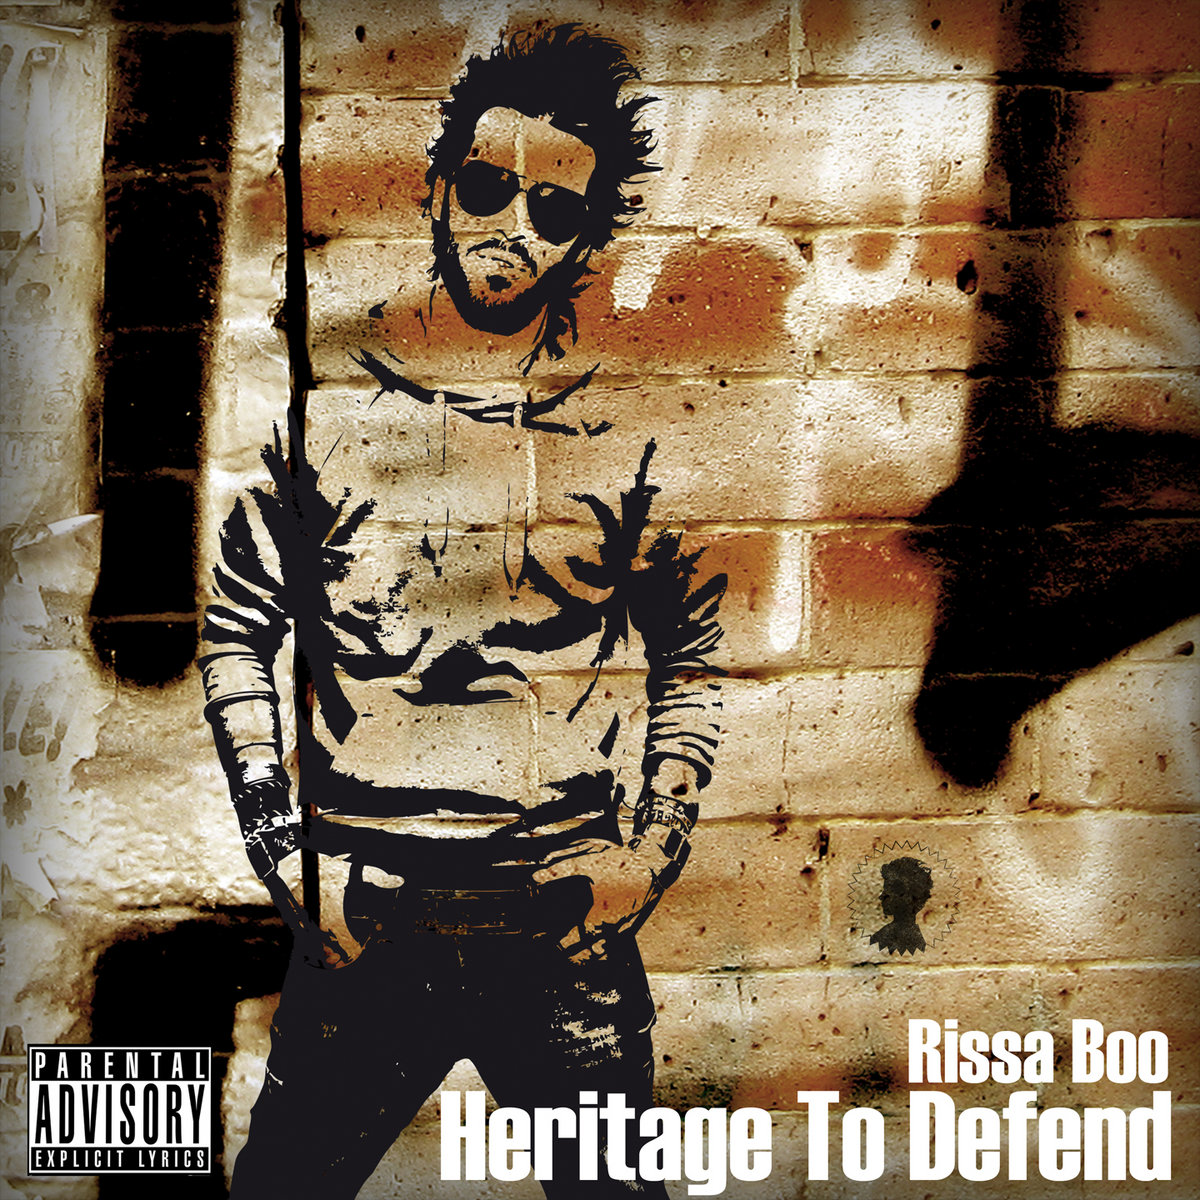 Heritage To Defend